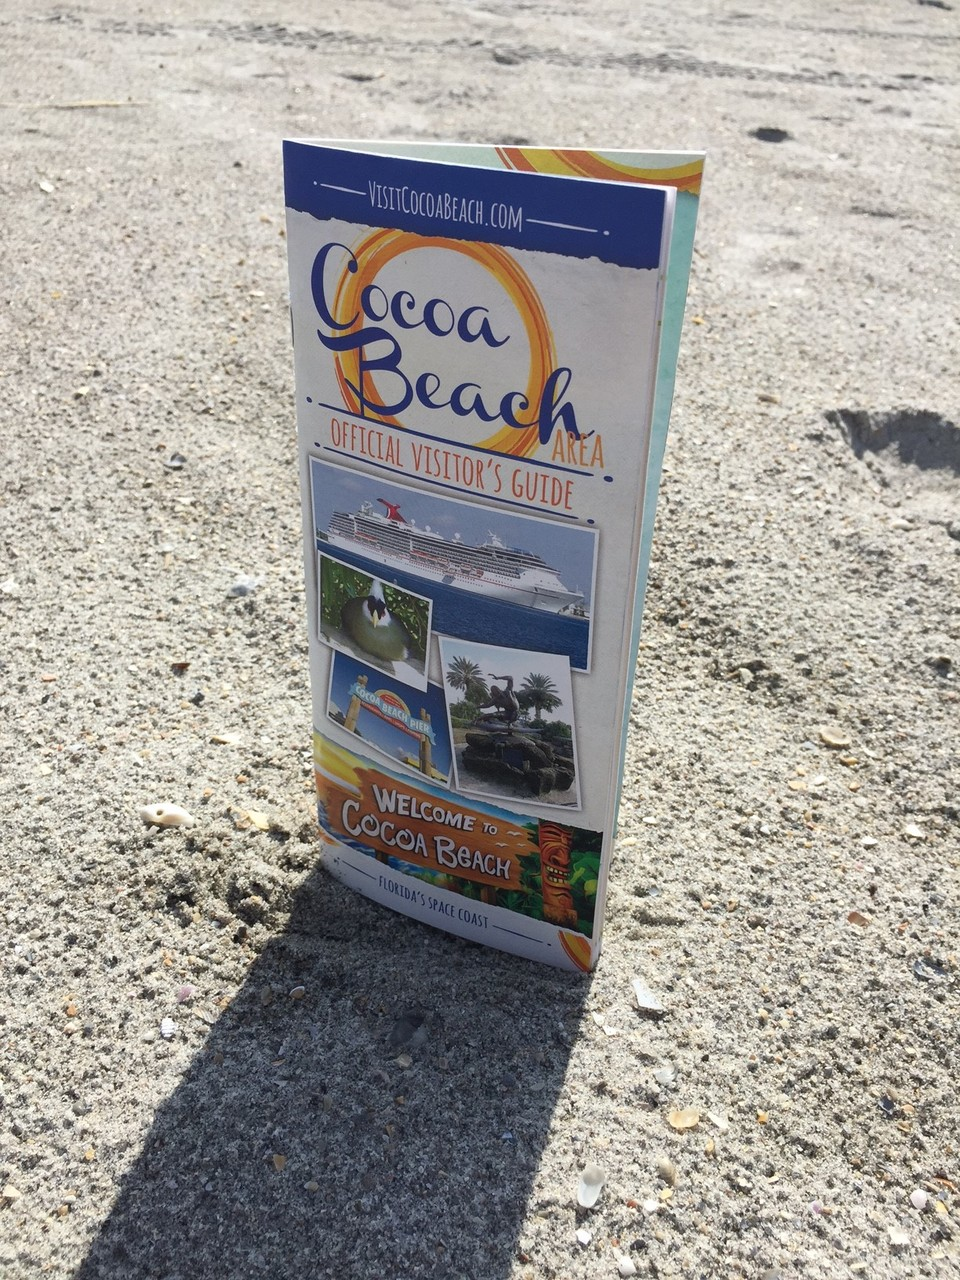 Cocoa Beach Area Visitor S Guide